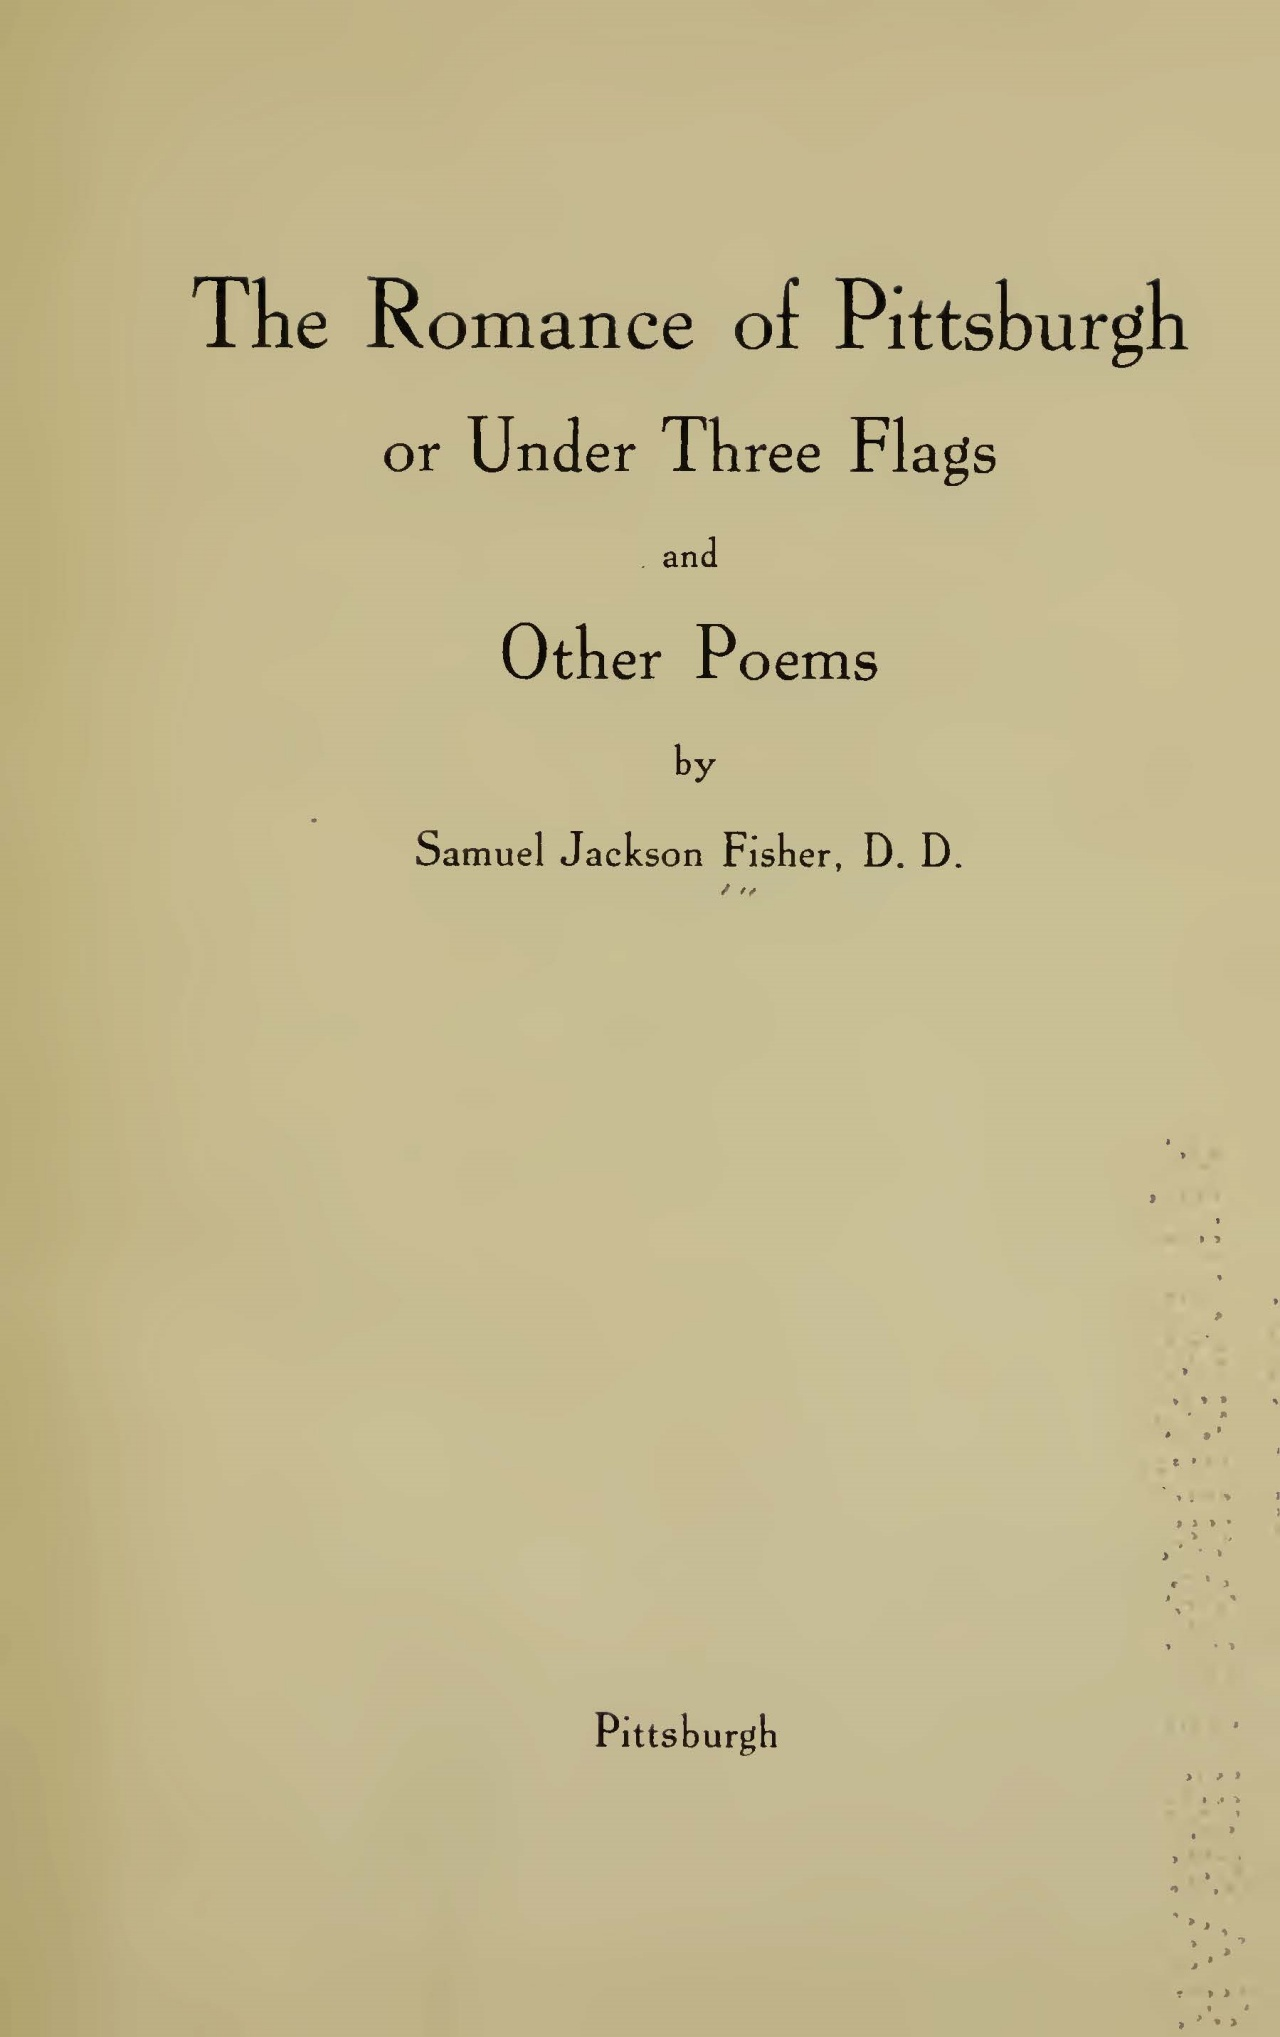 Fisher, Samuel Jackson, The Romance of Pittsburgh Title Page.jpg